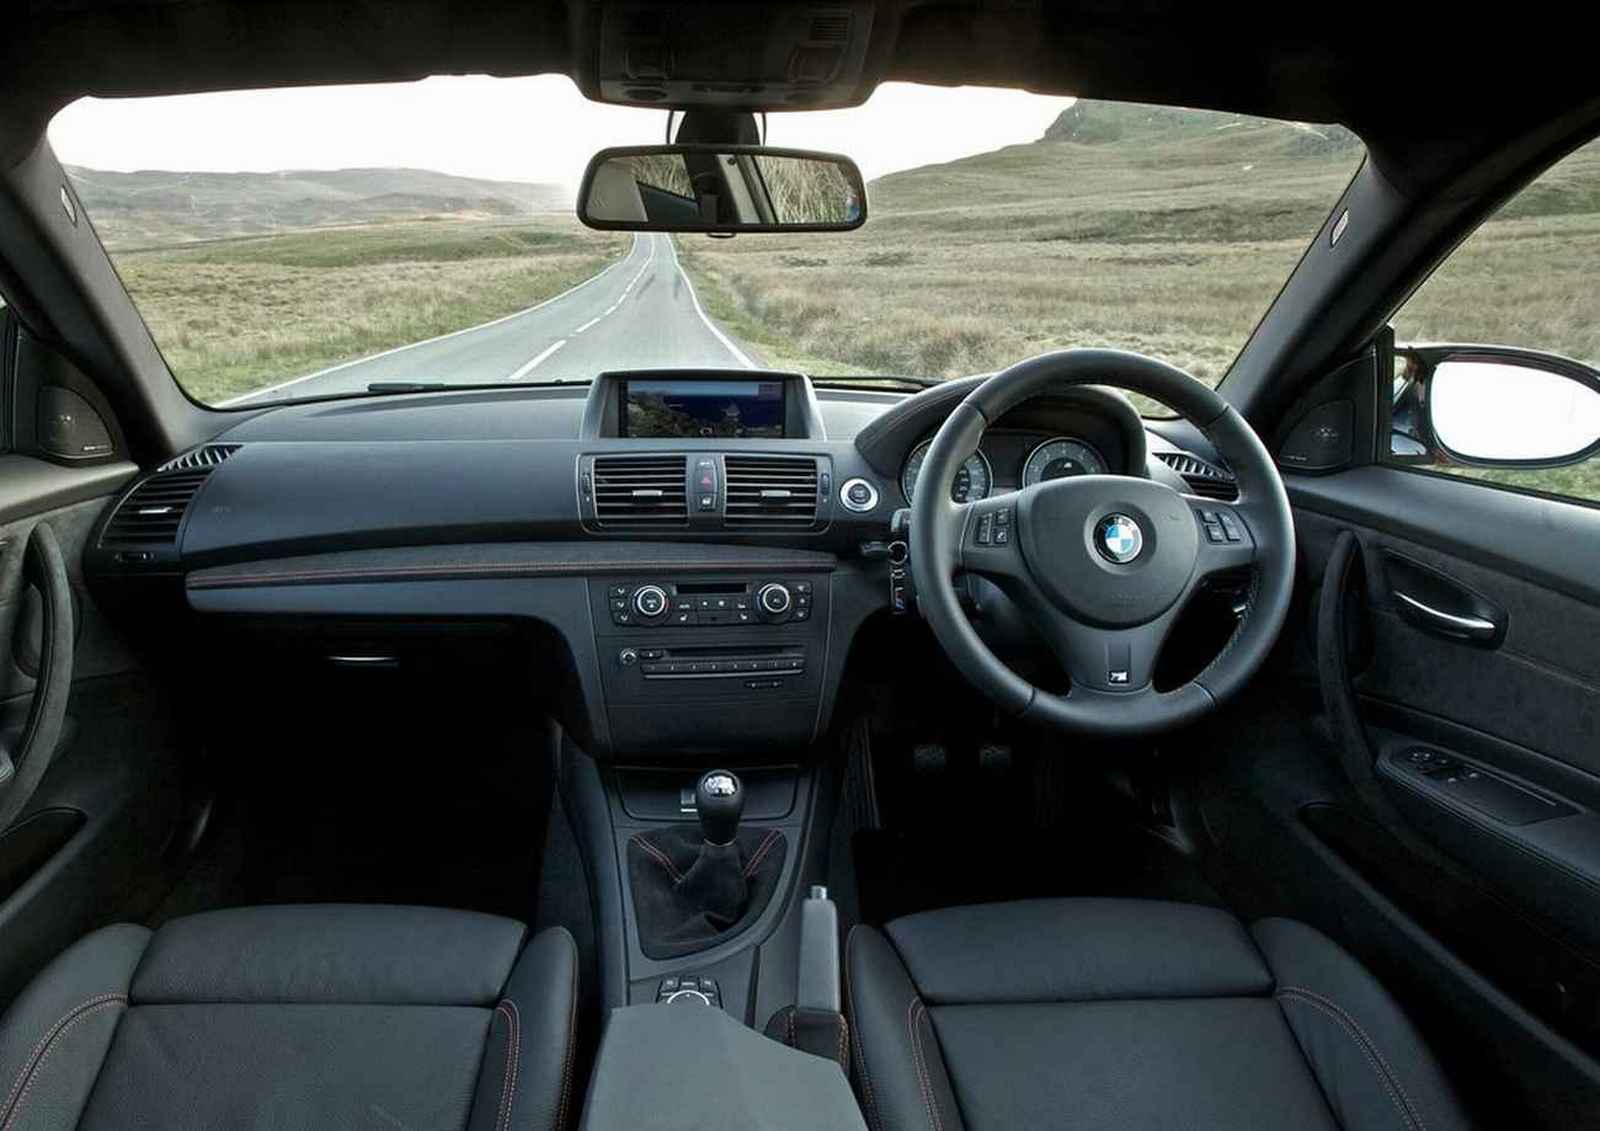 2011 BMW 1 Series M Coupe UK Version 5 2011 BMW 1 Series M Coupe UK Version  A Car Review